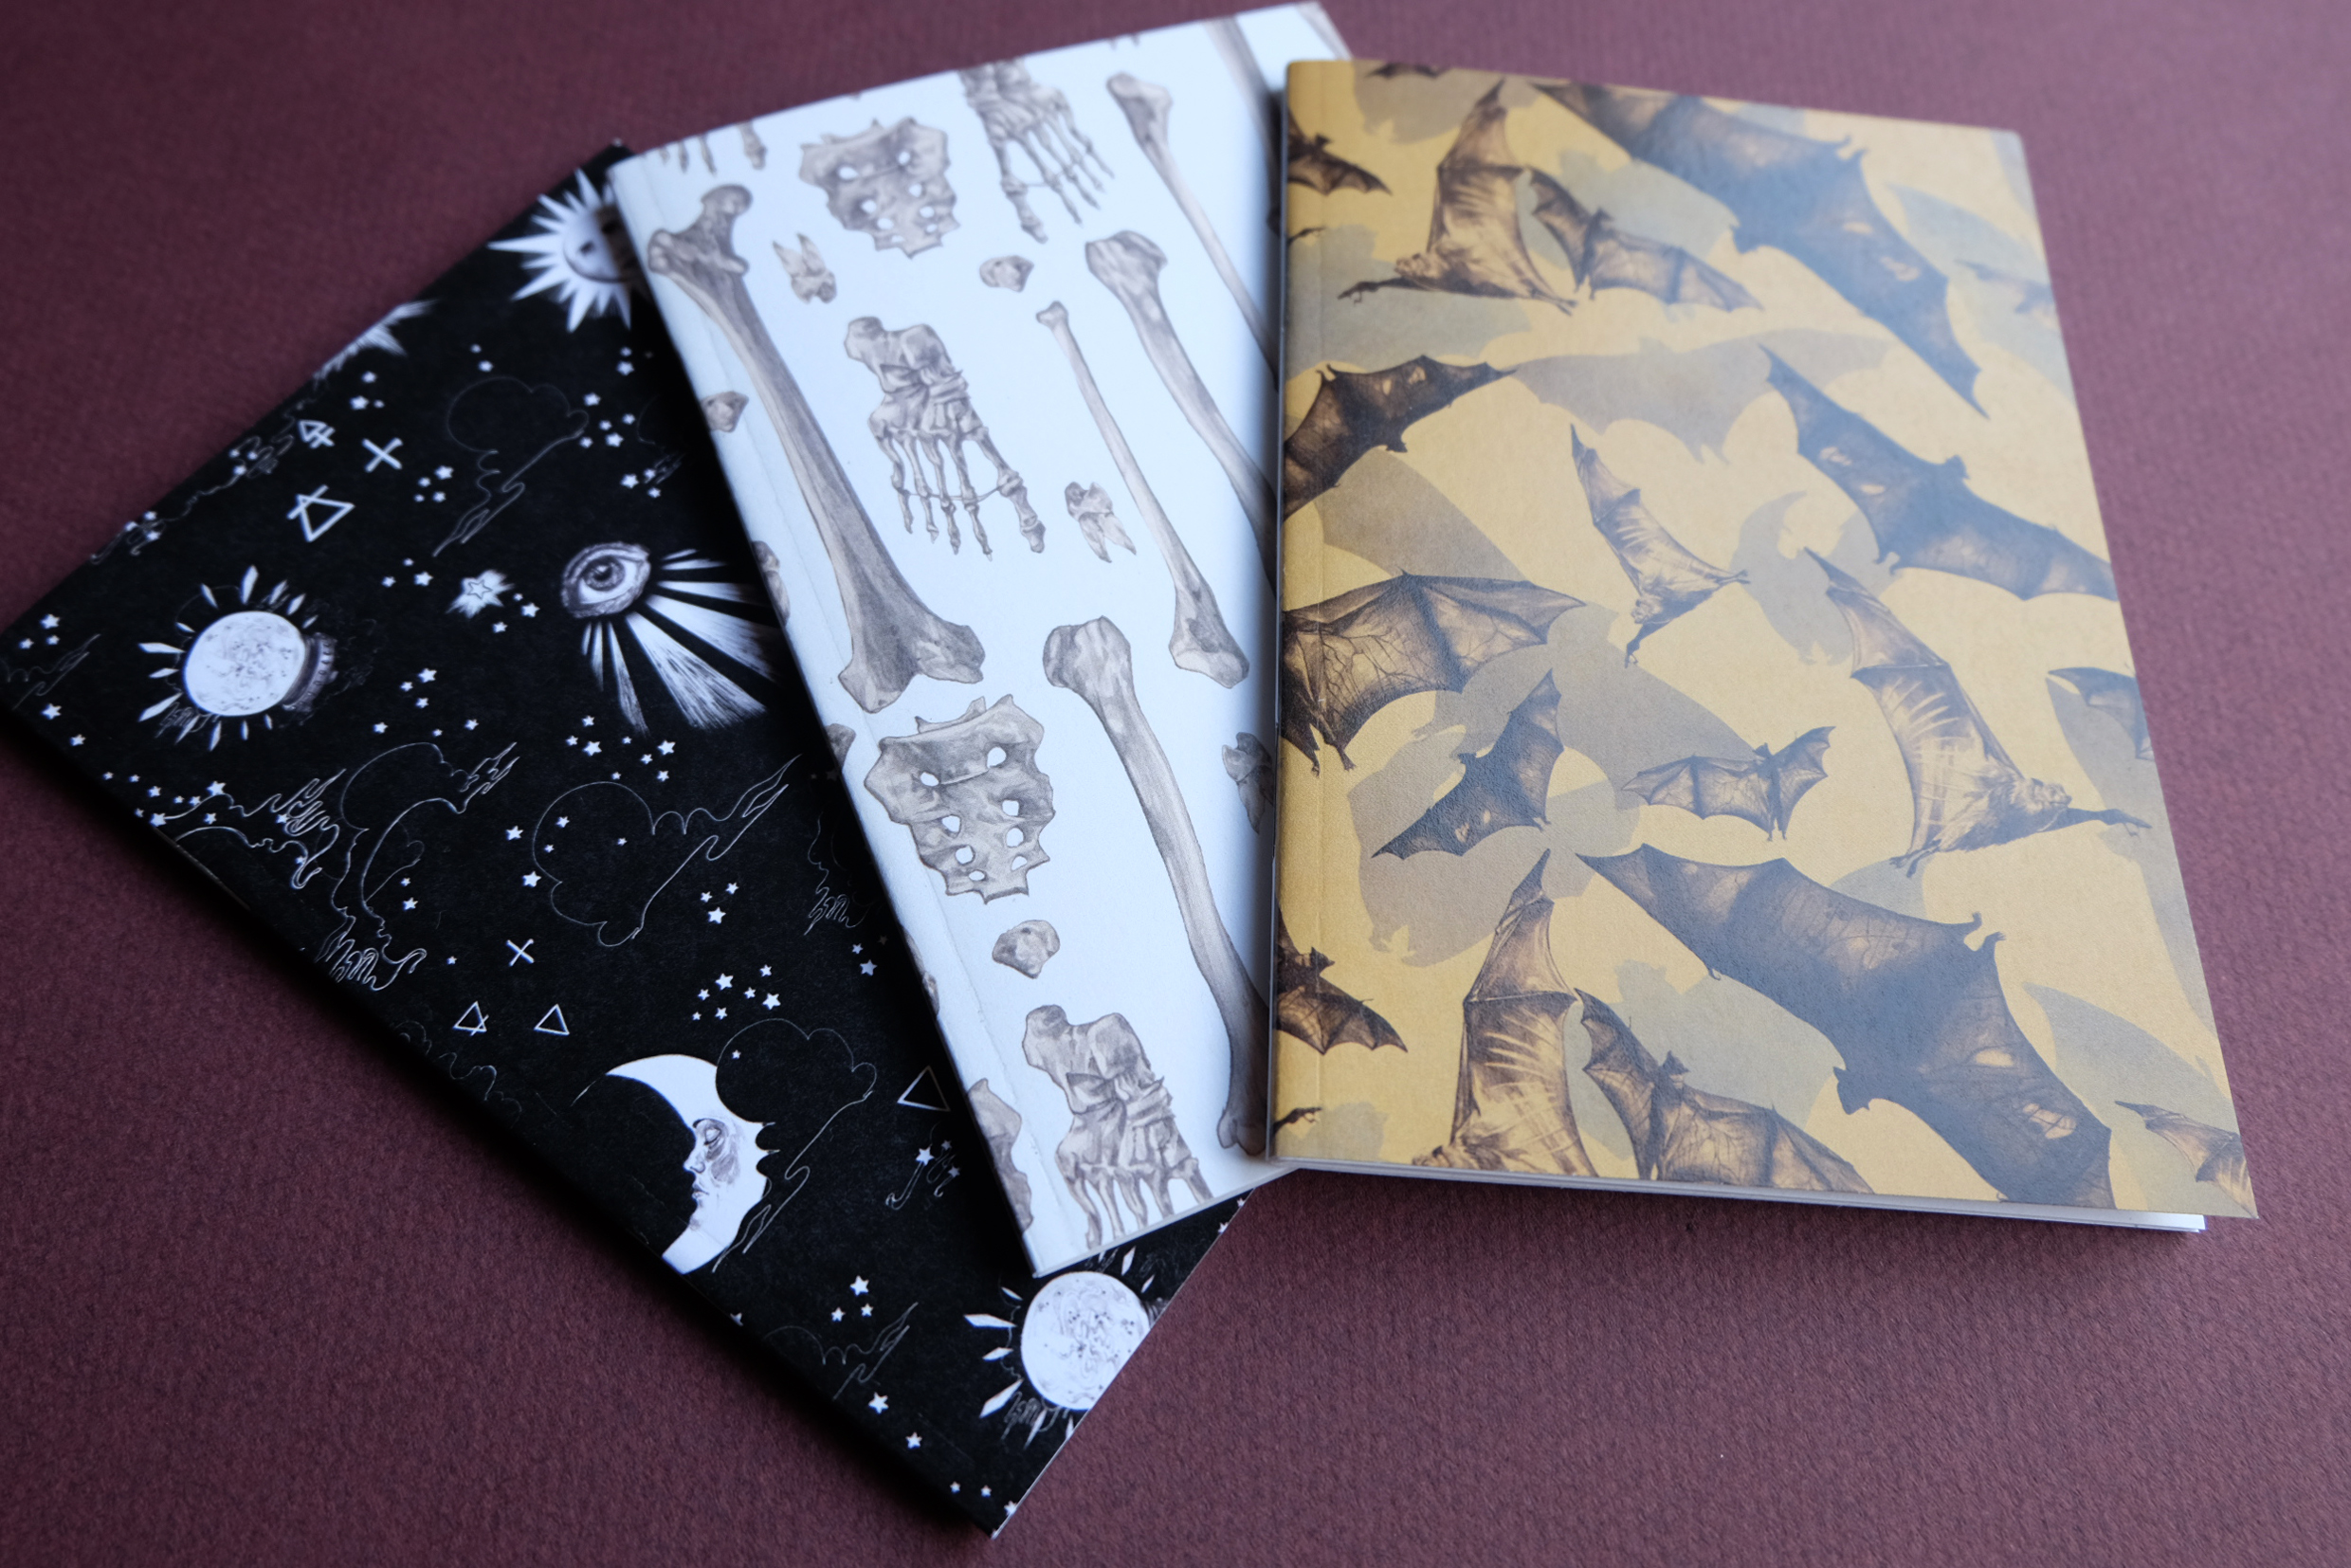 A6 mini sketchbooks - available in 5 designs including my Spiritual Alchemy print, Bones and Bats.